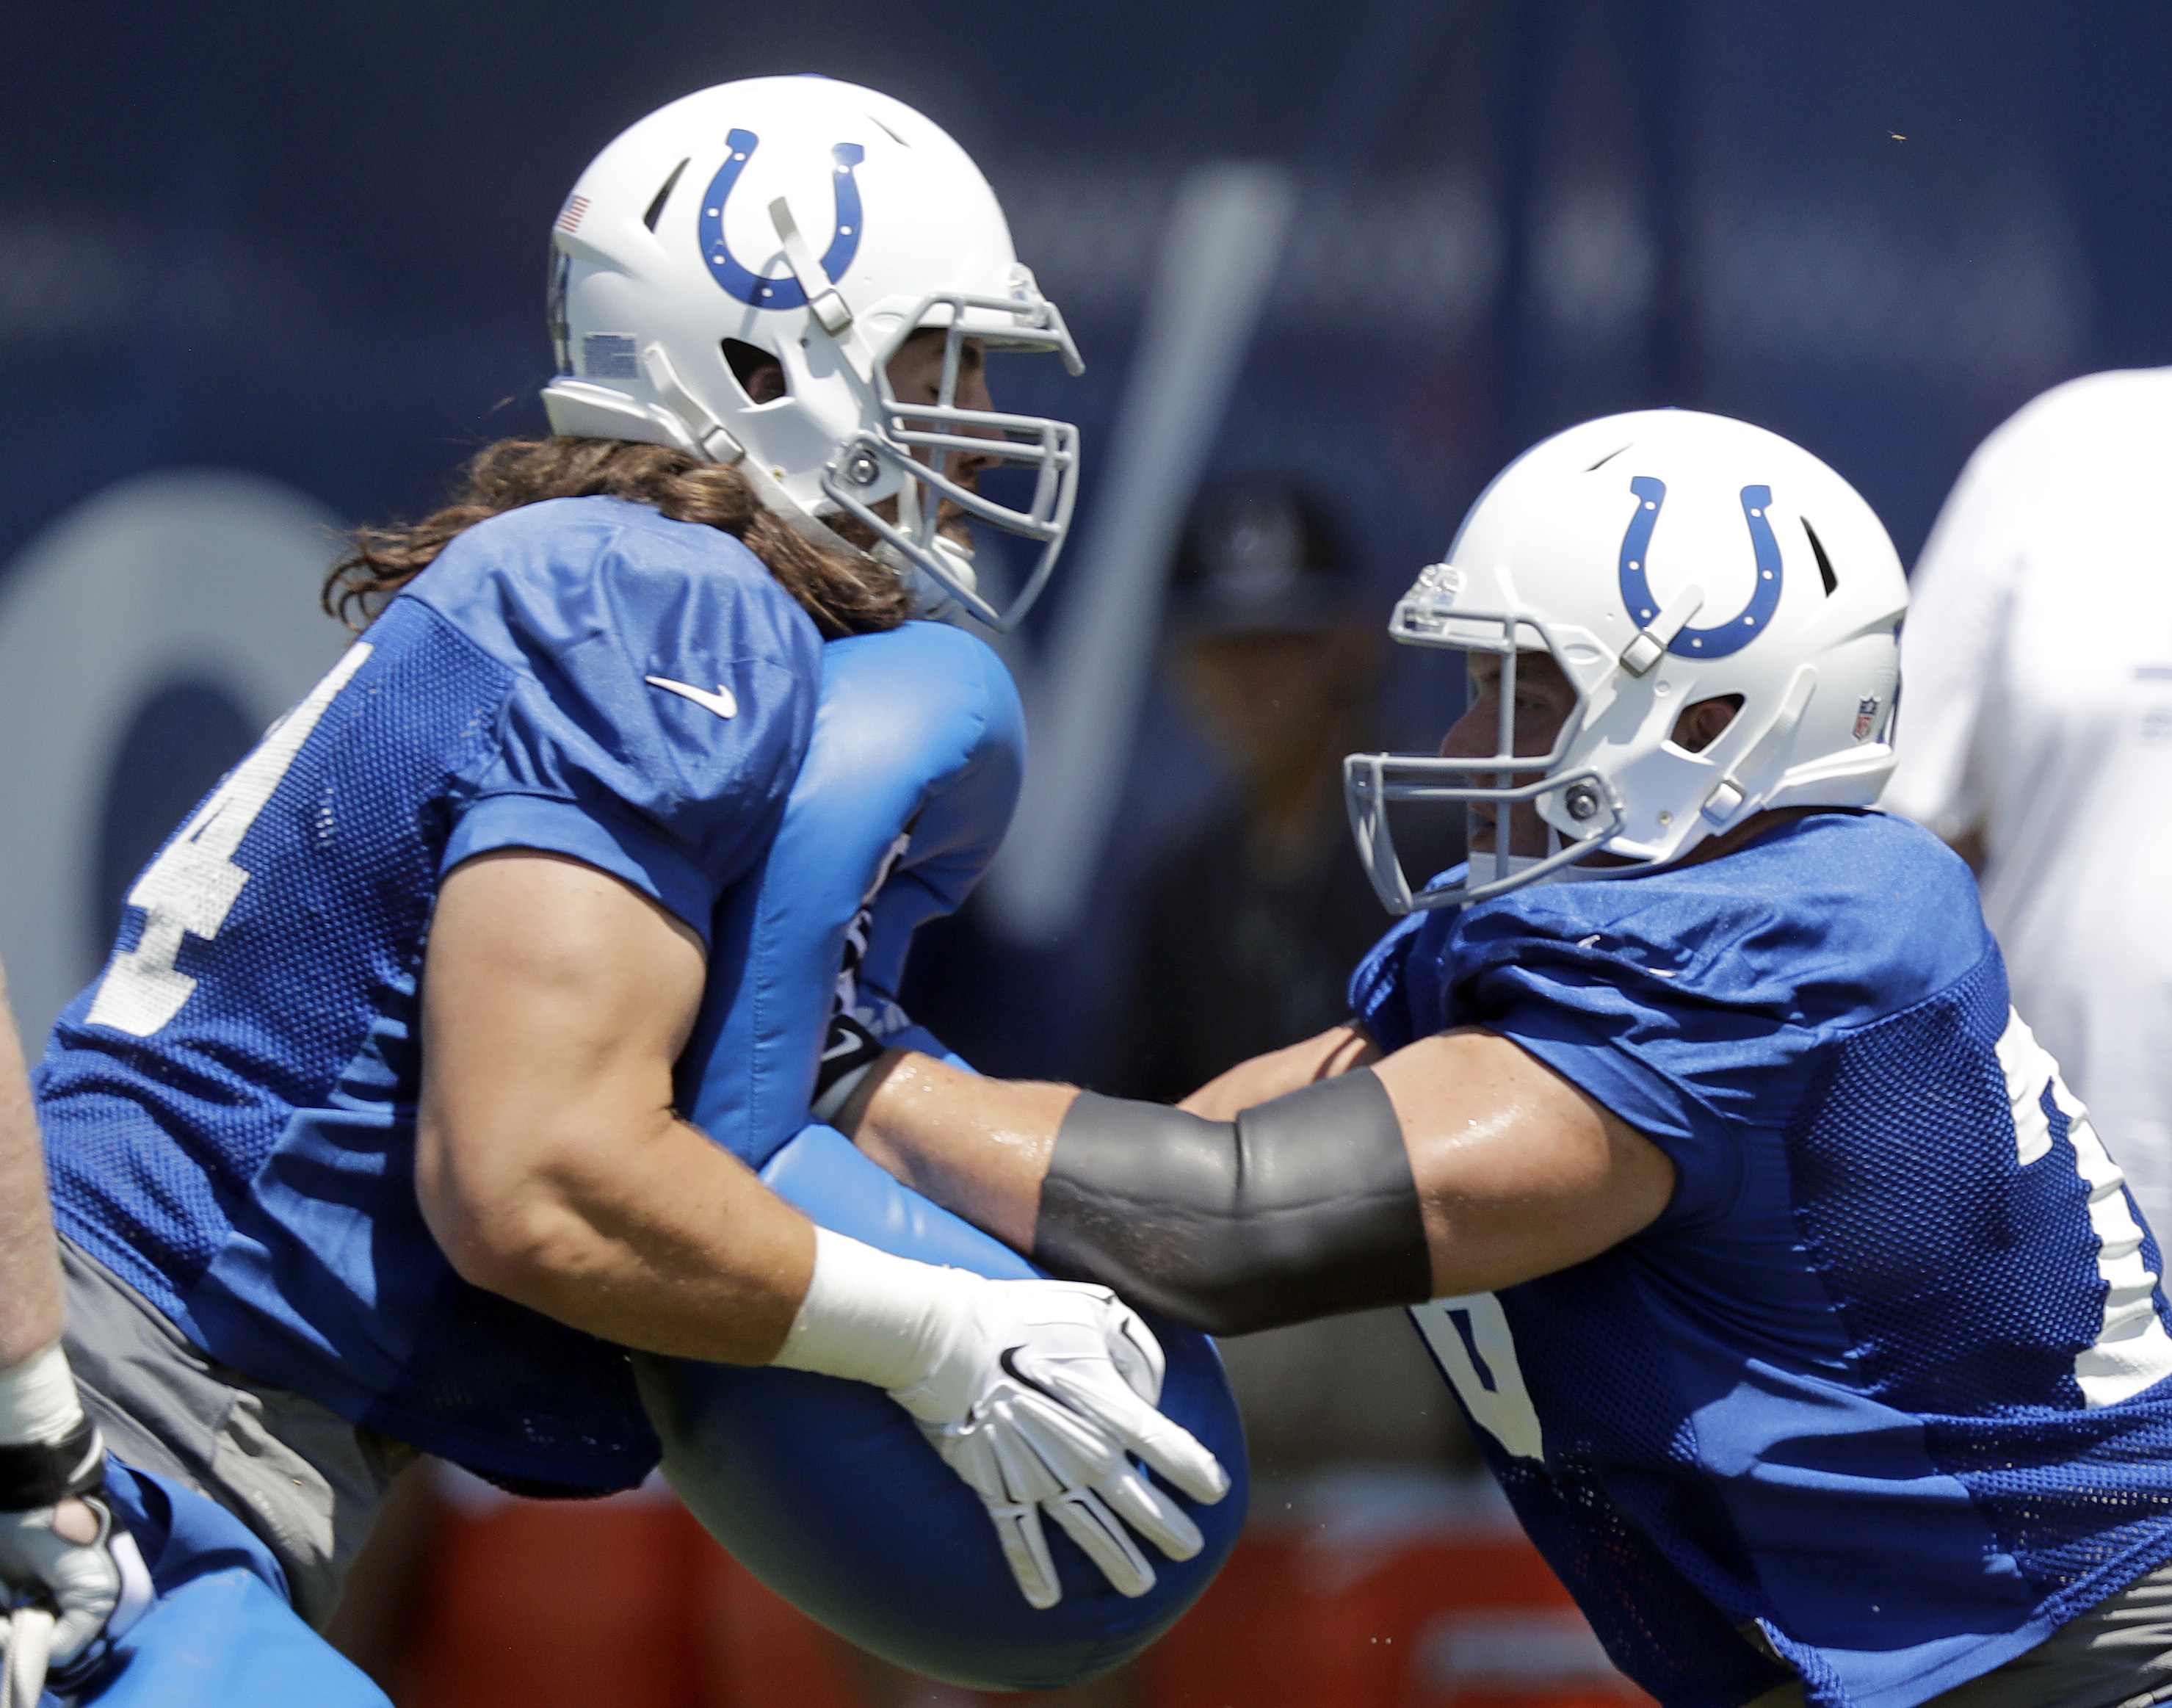 Indianapolis Colts center Ryan Kelly, right, and Anthony Castonzo run a drill during an NFL football training camp, Wednesday, July 27, 2016, in Anderson, Ind. (AP Photo/Darron Cummings)